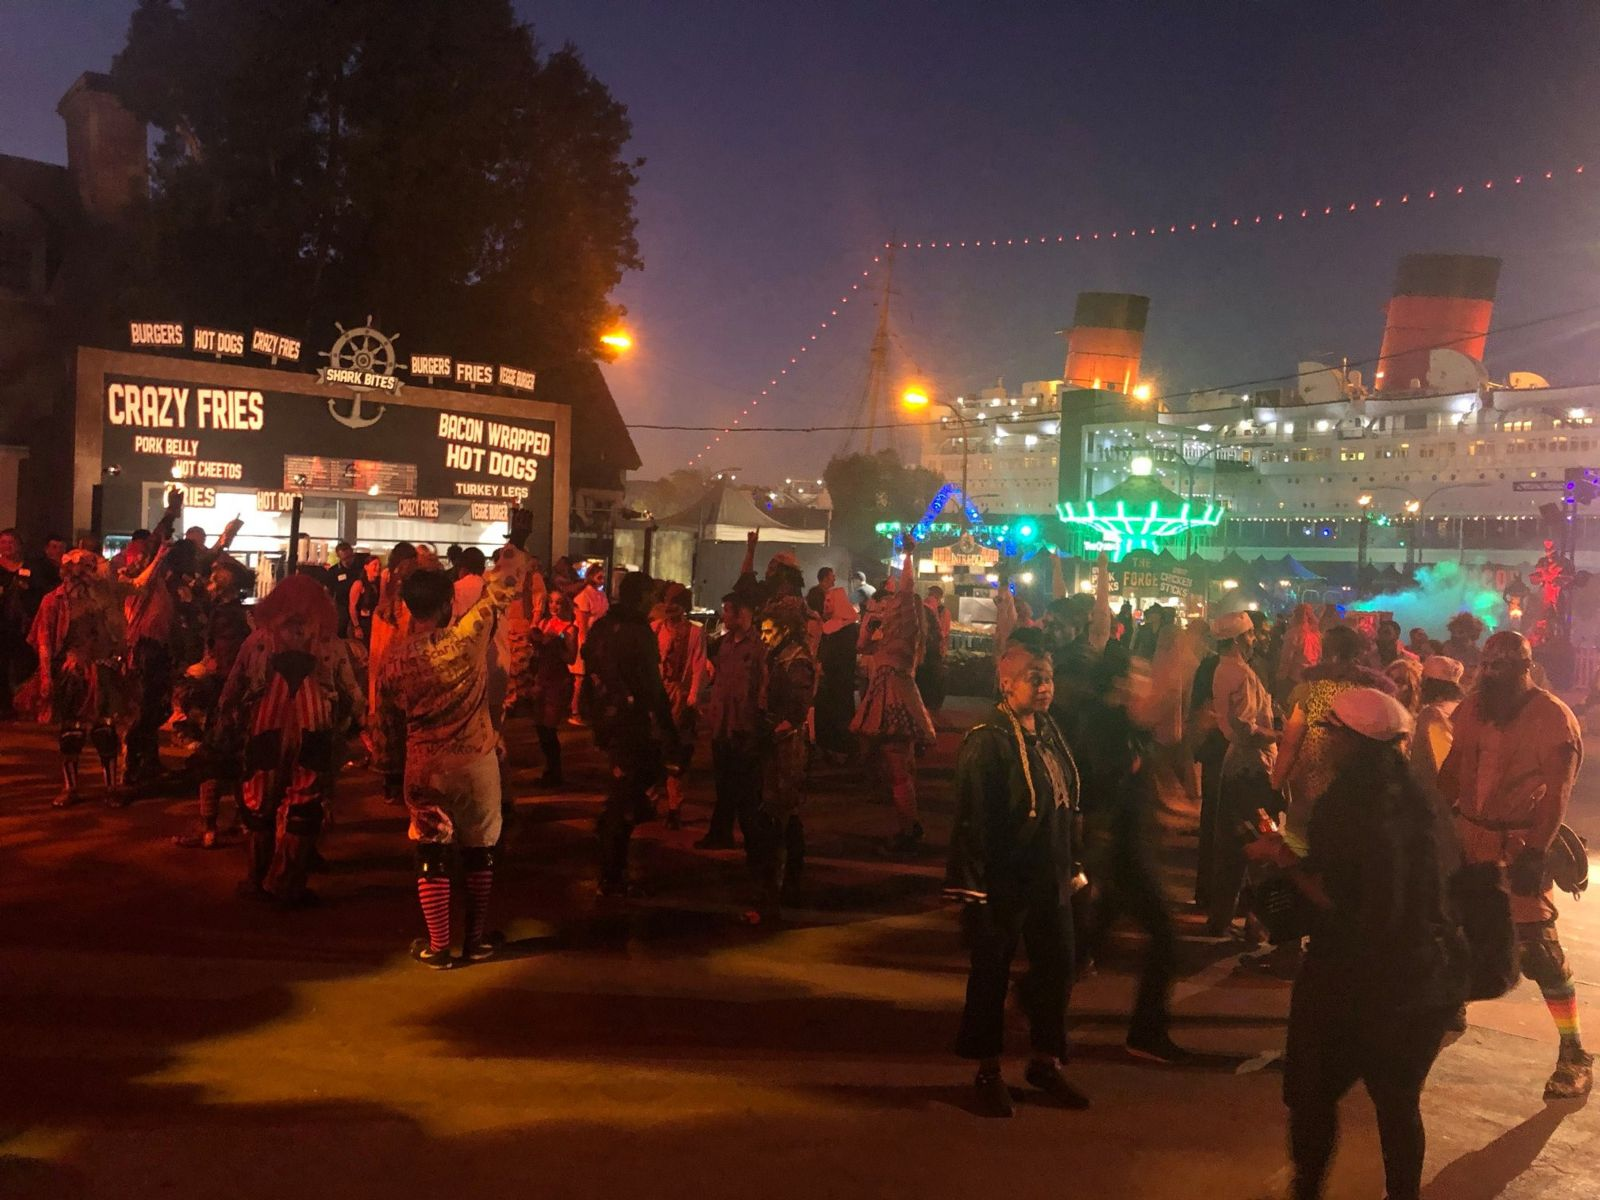 TEA Behind the Scenes at The Queen Mary's Dark Harbor - Kourtney Day reports